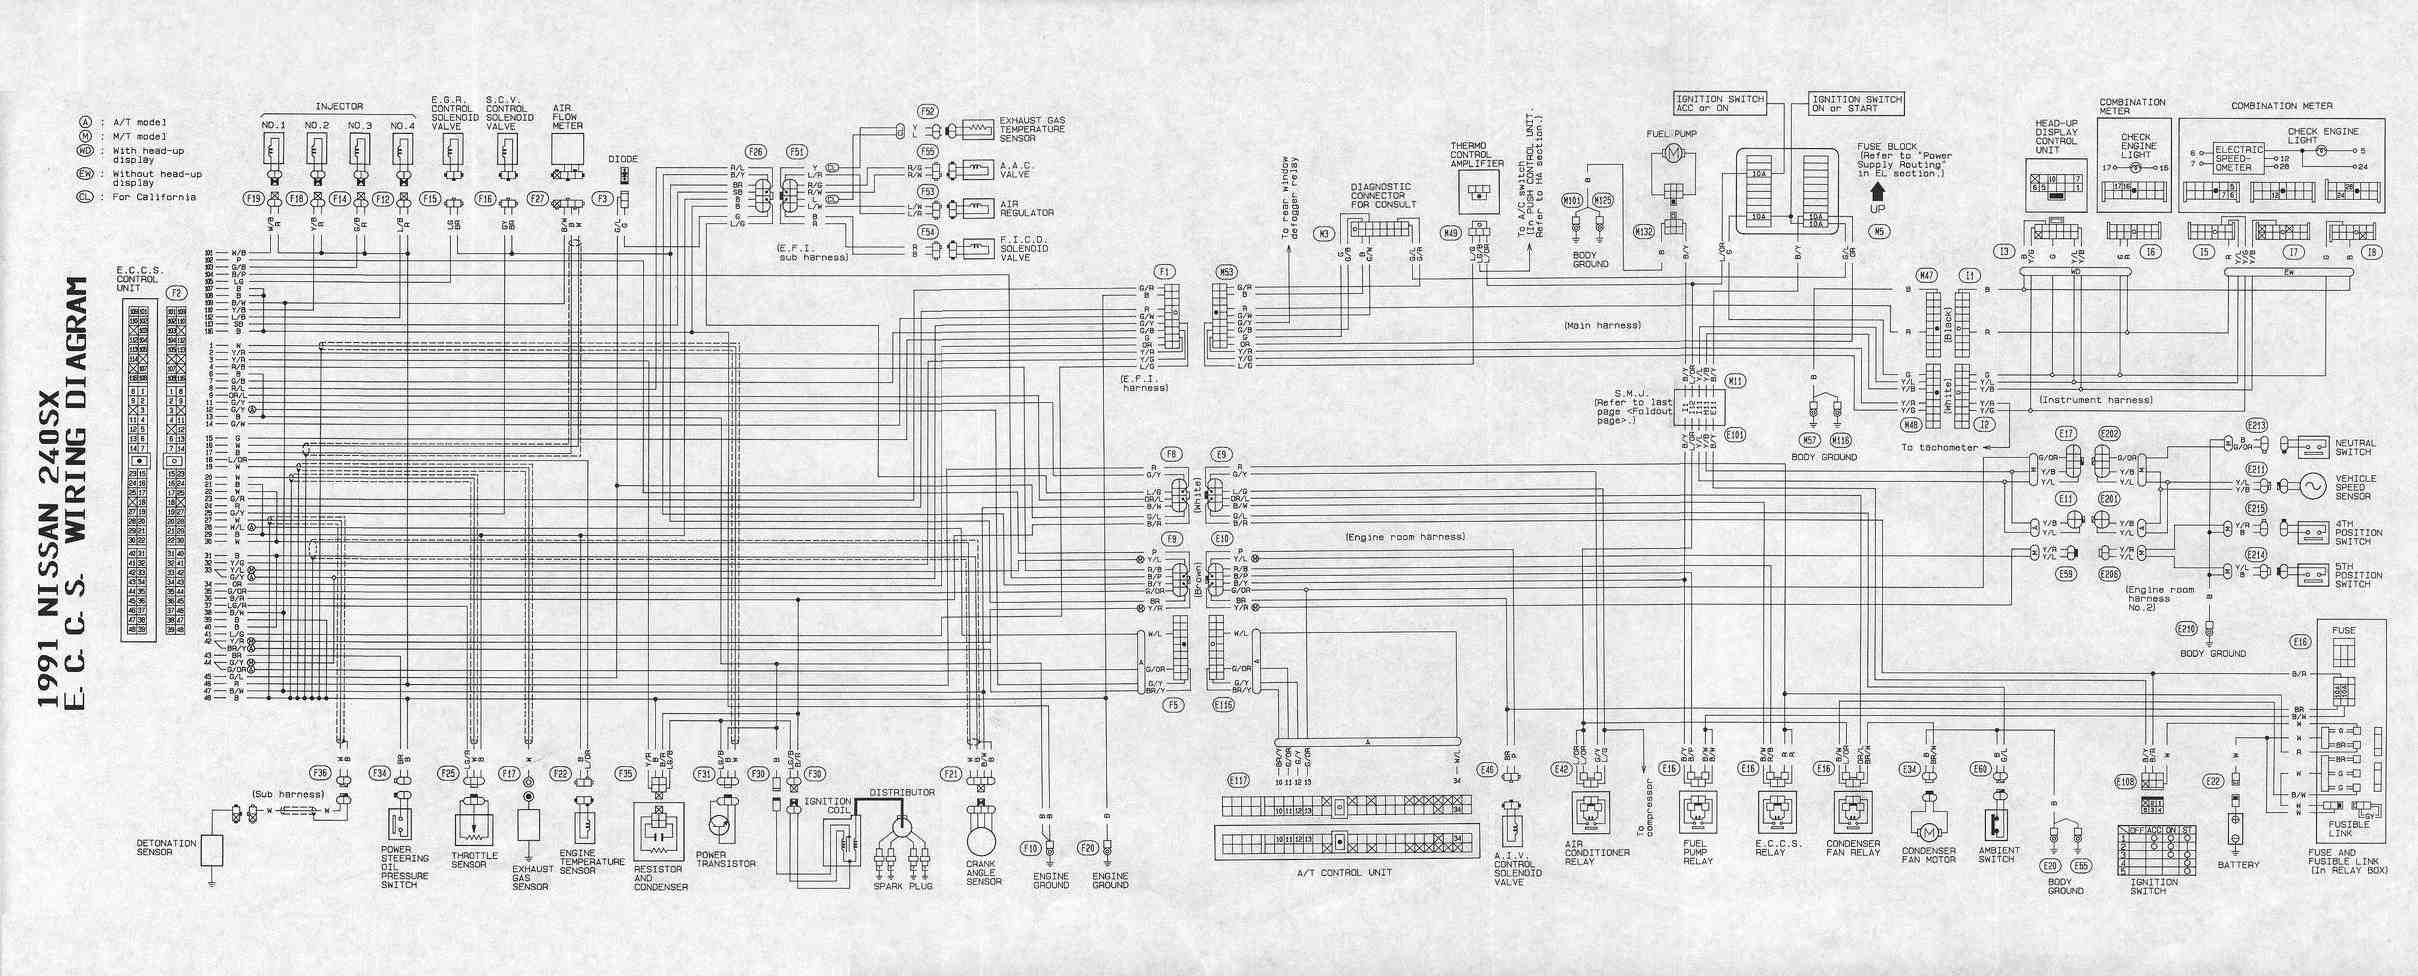 luxury wiring diagram for 280z v8 pattern electrical and wiring 1978 datsun 280z vacuum diagram fantastic 280z wiring harness diagram illustration everything you